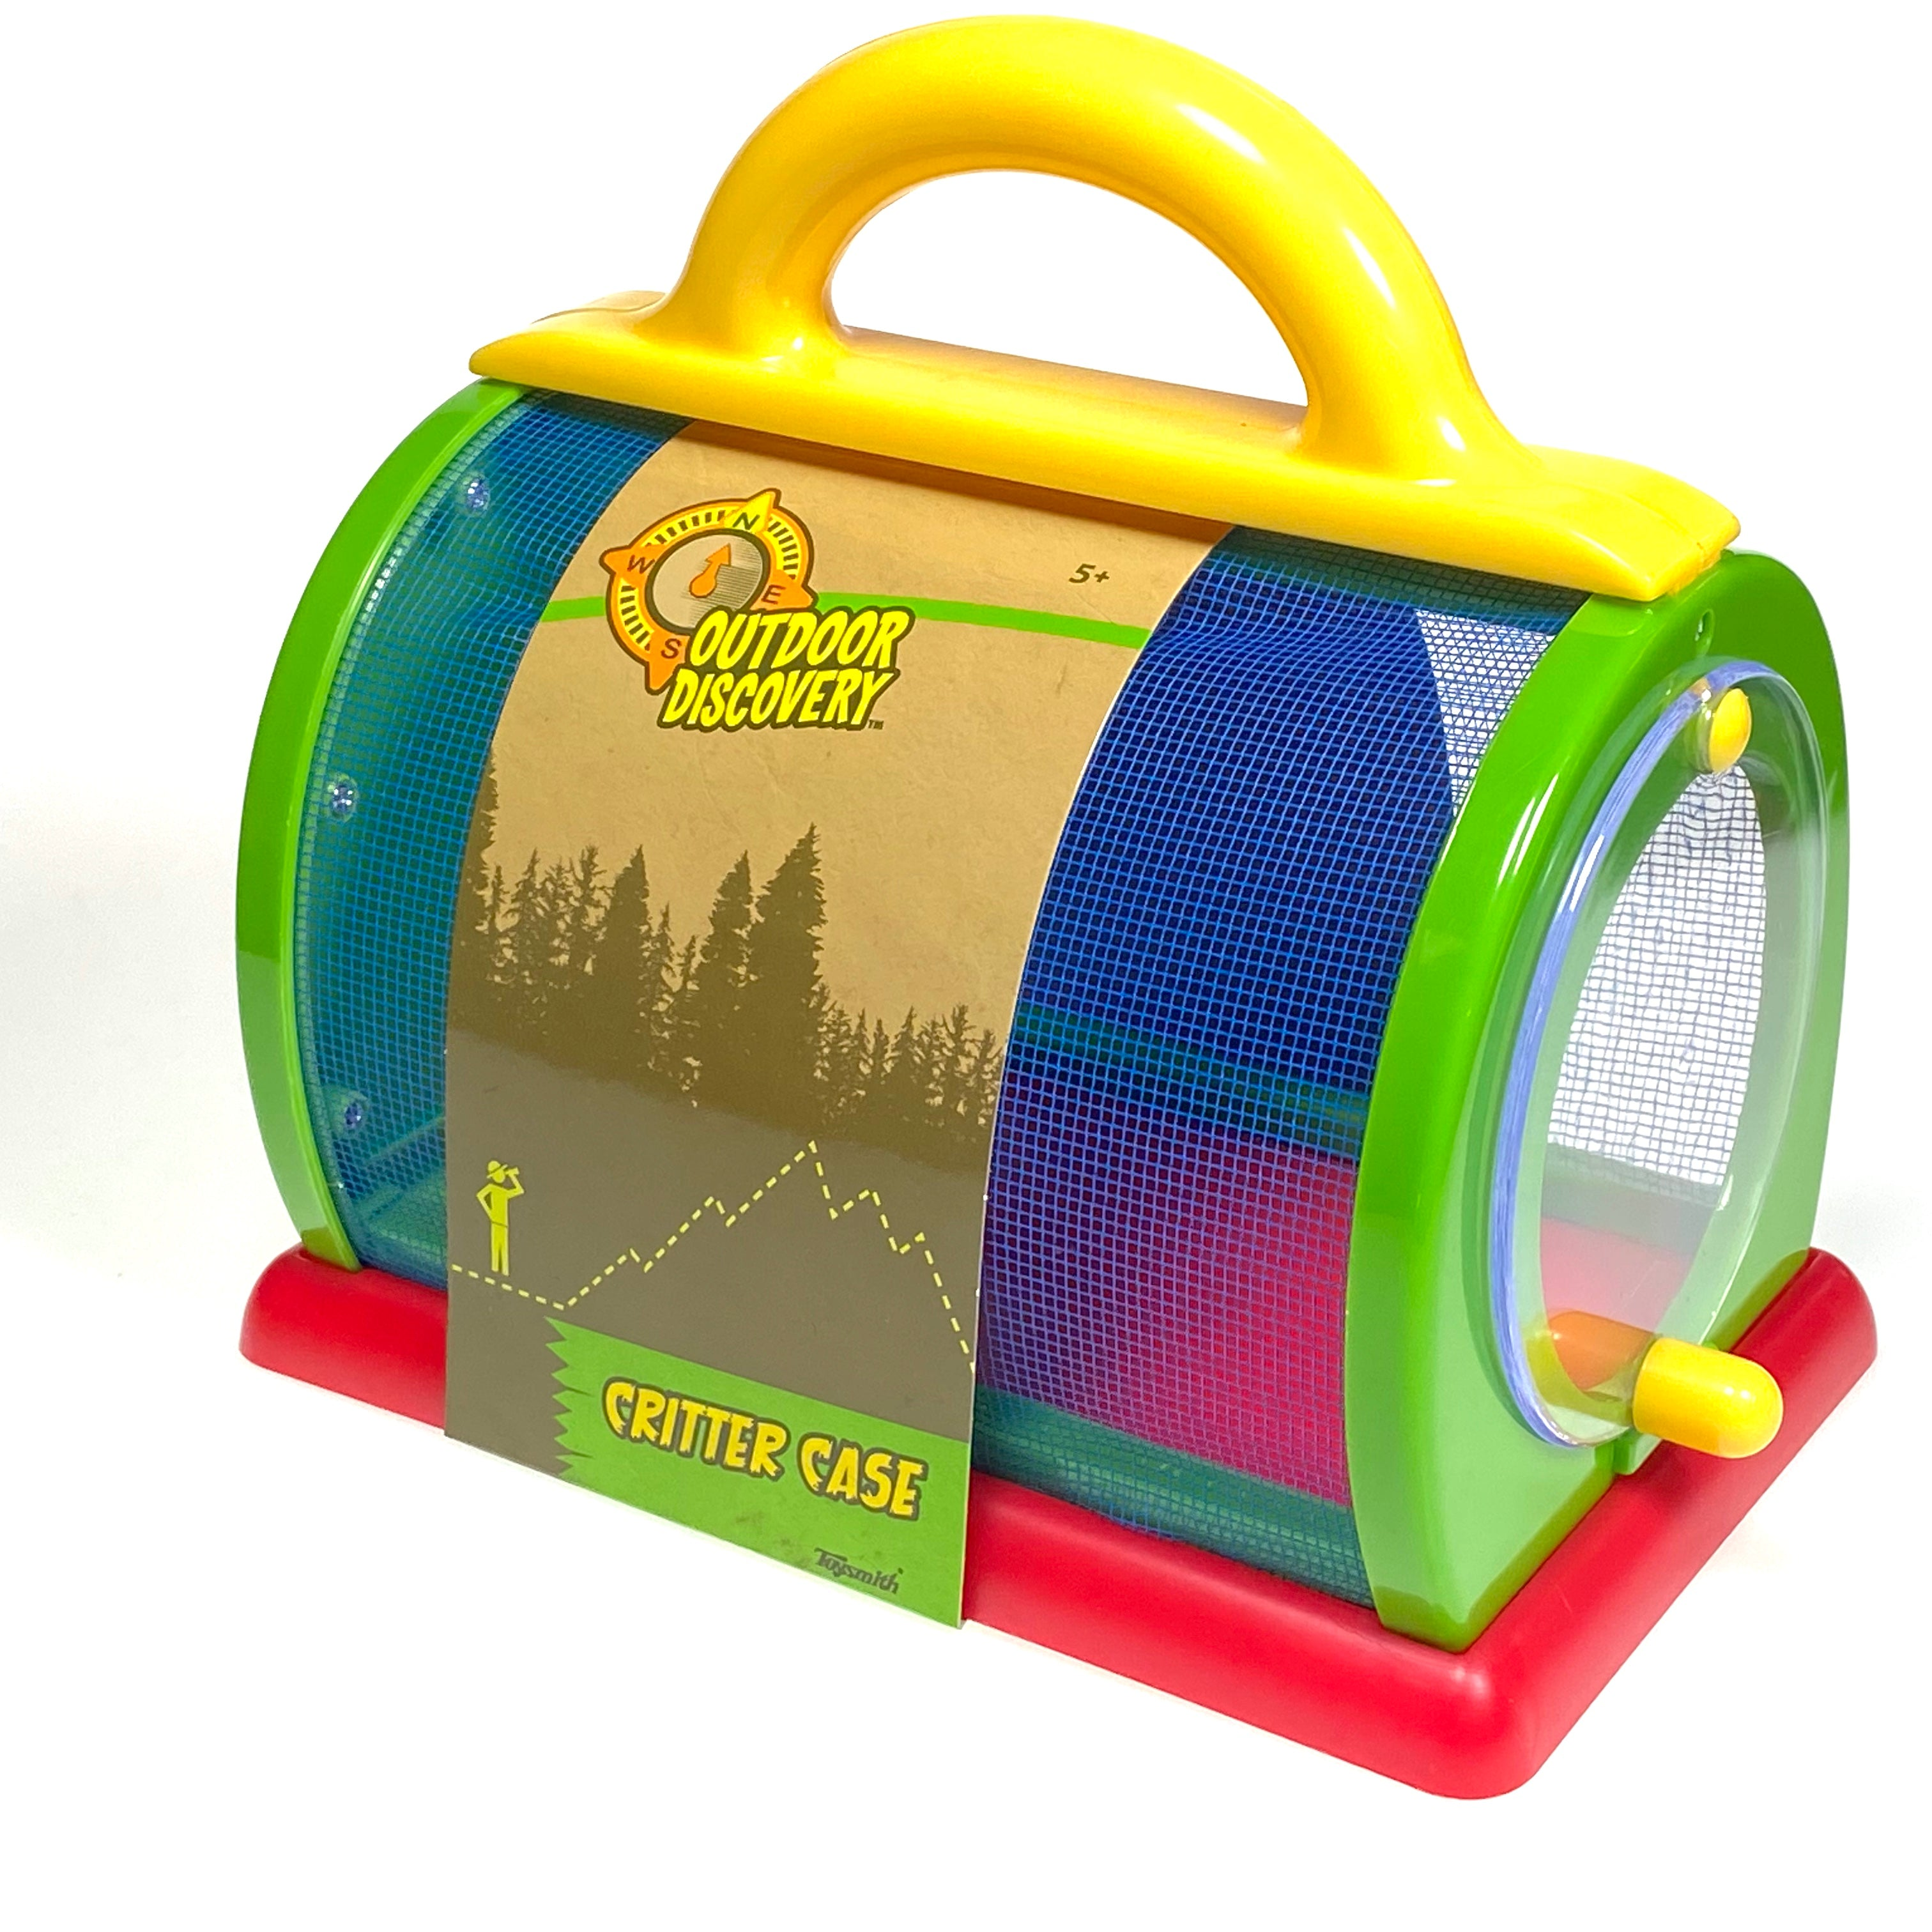 Outdoor Discovery Critter Case